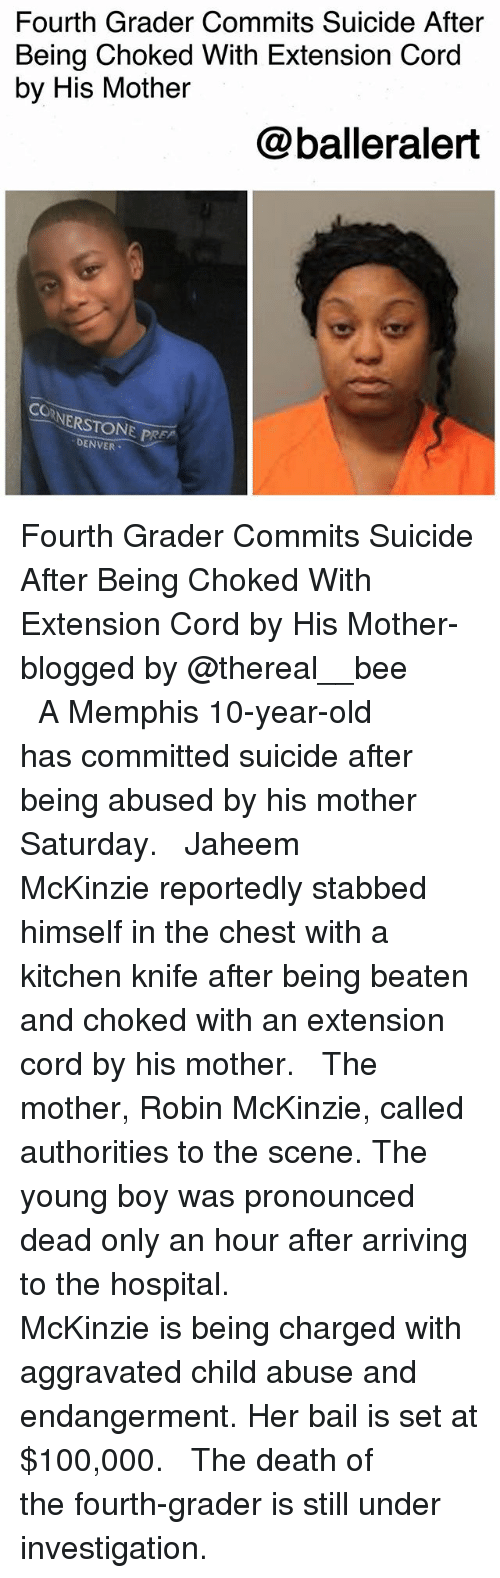 Anaconda, Memes, and Death: Fourth Grader Commits Suicide After  Being Choked With Extension Cord  by His Mother  @balleralert  NERSTONE PRE  DENVER- Fourth Grader Commits Suicide After Being Choked With Extension Cord by His Mother-blogged by @thereal__bee ⠀⠀⠀⠀⠀⠀⠀⠀⠀ ⠀⠀ A Memphis 10-year-old has committed suicide after being abused by his mother Saturday. ⠀⠀⠀⠀⠀⠀⠀⠀⠀ ⠀⠀ Jaheem McKinzie reportedly stabbed himself in the chest with a kitchen knife after being beaten and choked with an extension cord by his mother. ⠀⠀⠀⠀⠀⠀⠀⠀⠀ ⠀⠀ The mother, Robin McKinzie, called authorities to the scene. The young boy was pronounced dead only an hour after arriving to the hospital. ⠀⠀⠀⠀⠀⠀⠀⠀⠀ ⠀⠀ McKinzie is being charged with aggravated child abuse and endangerment. Her bail is set at $100,000. ⠀⠀⠀⠀⠀⠀⠀⠀⠀ ⠀⠀ The death of the fourth-grader is still under investigation.